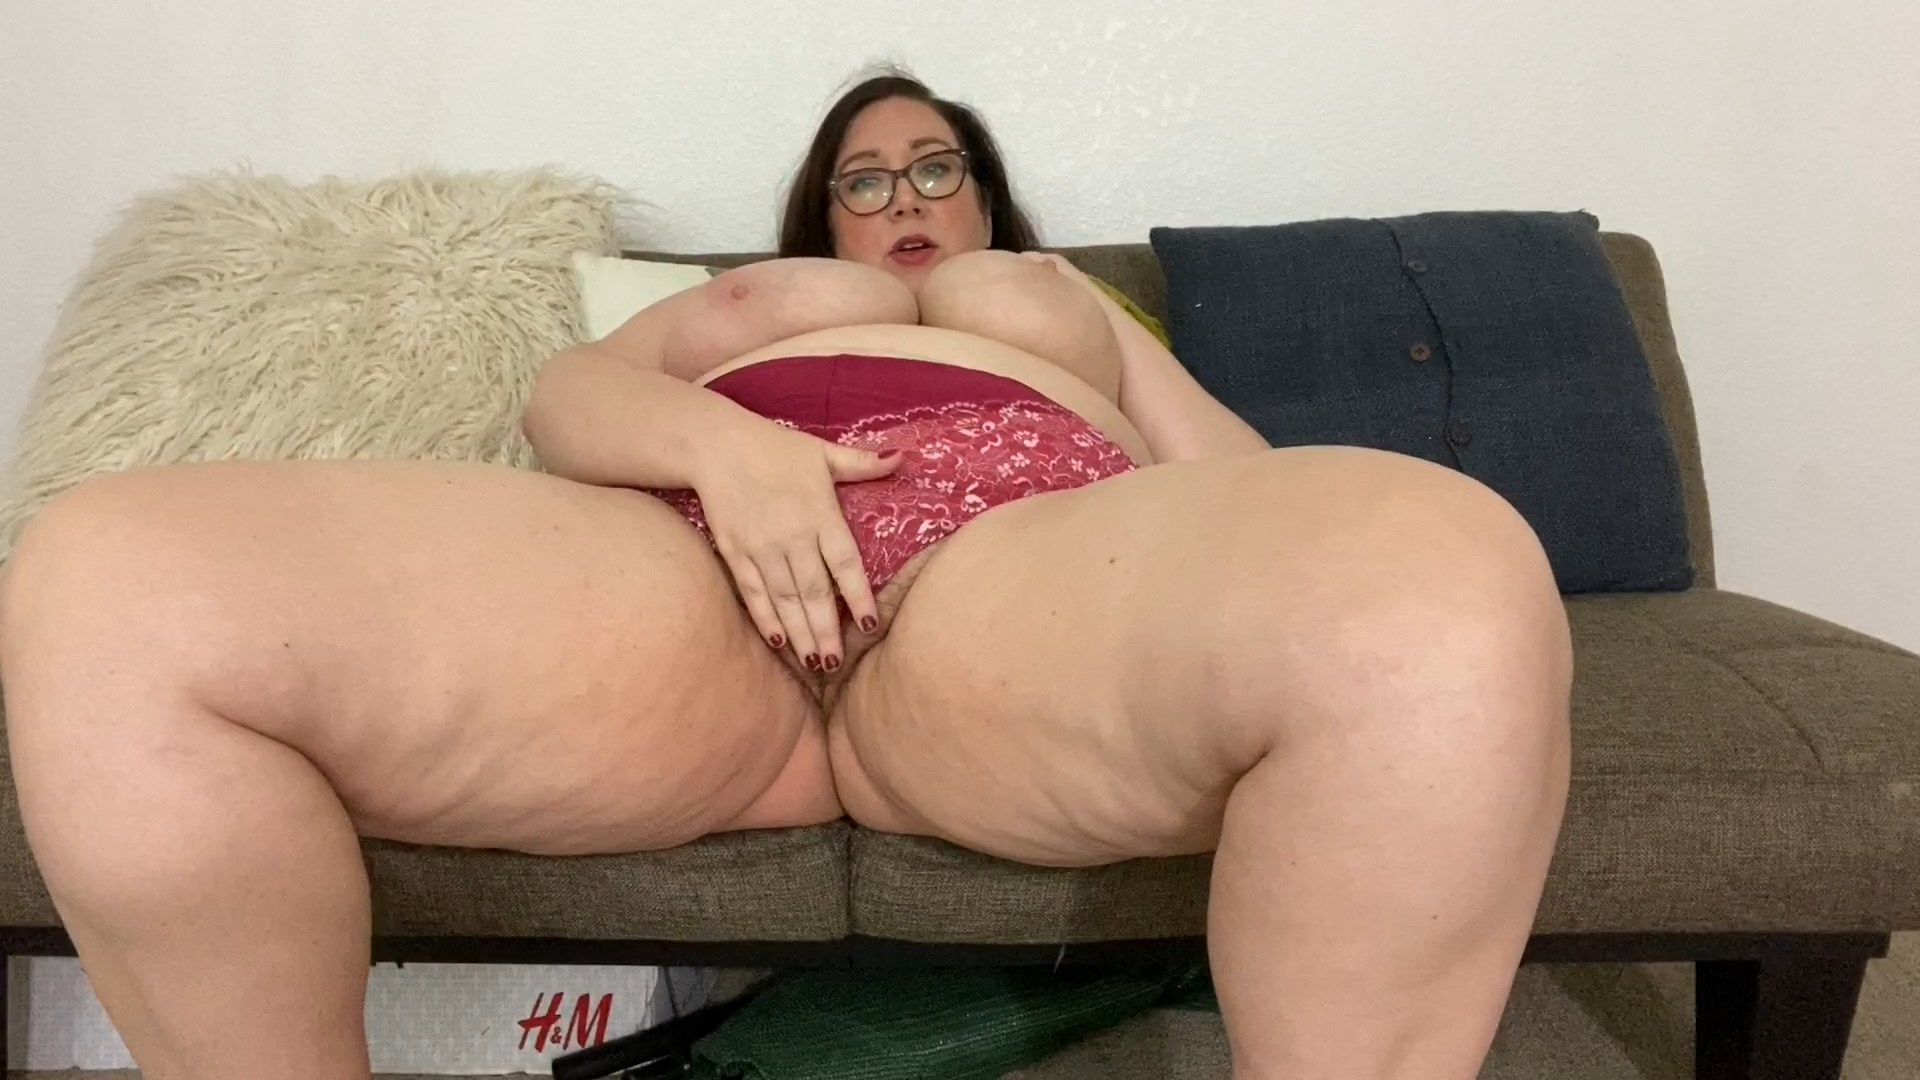 Cutejayne - Stepmom Wants You Panty Worship